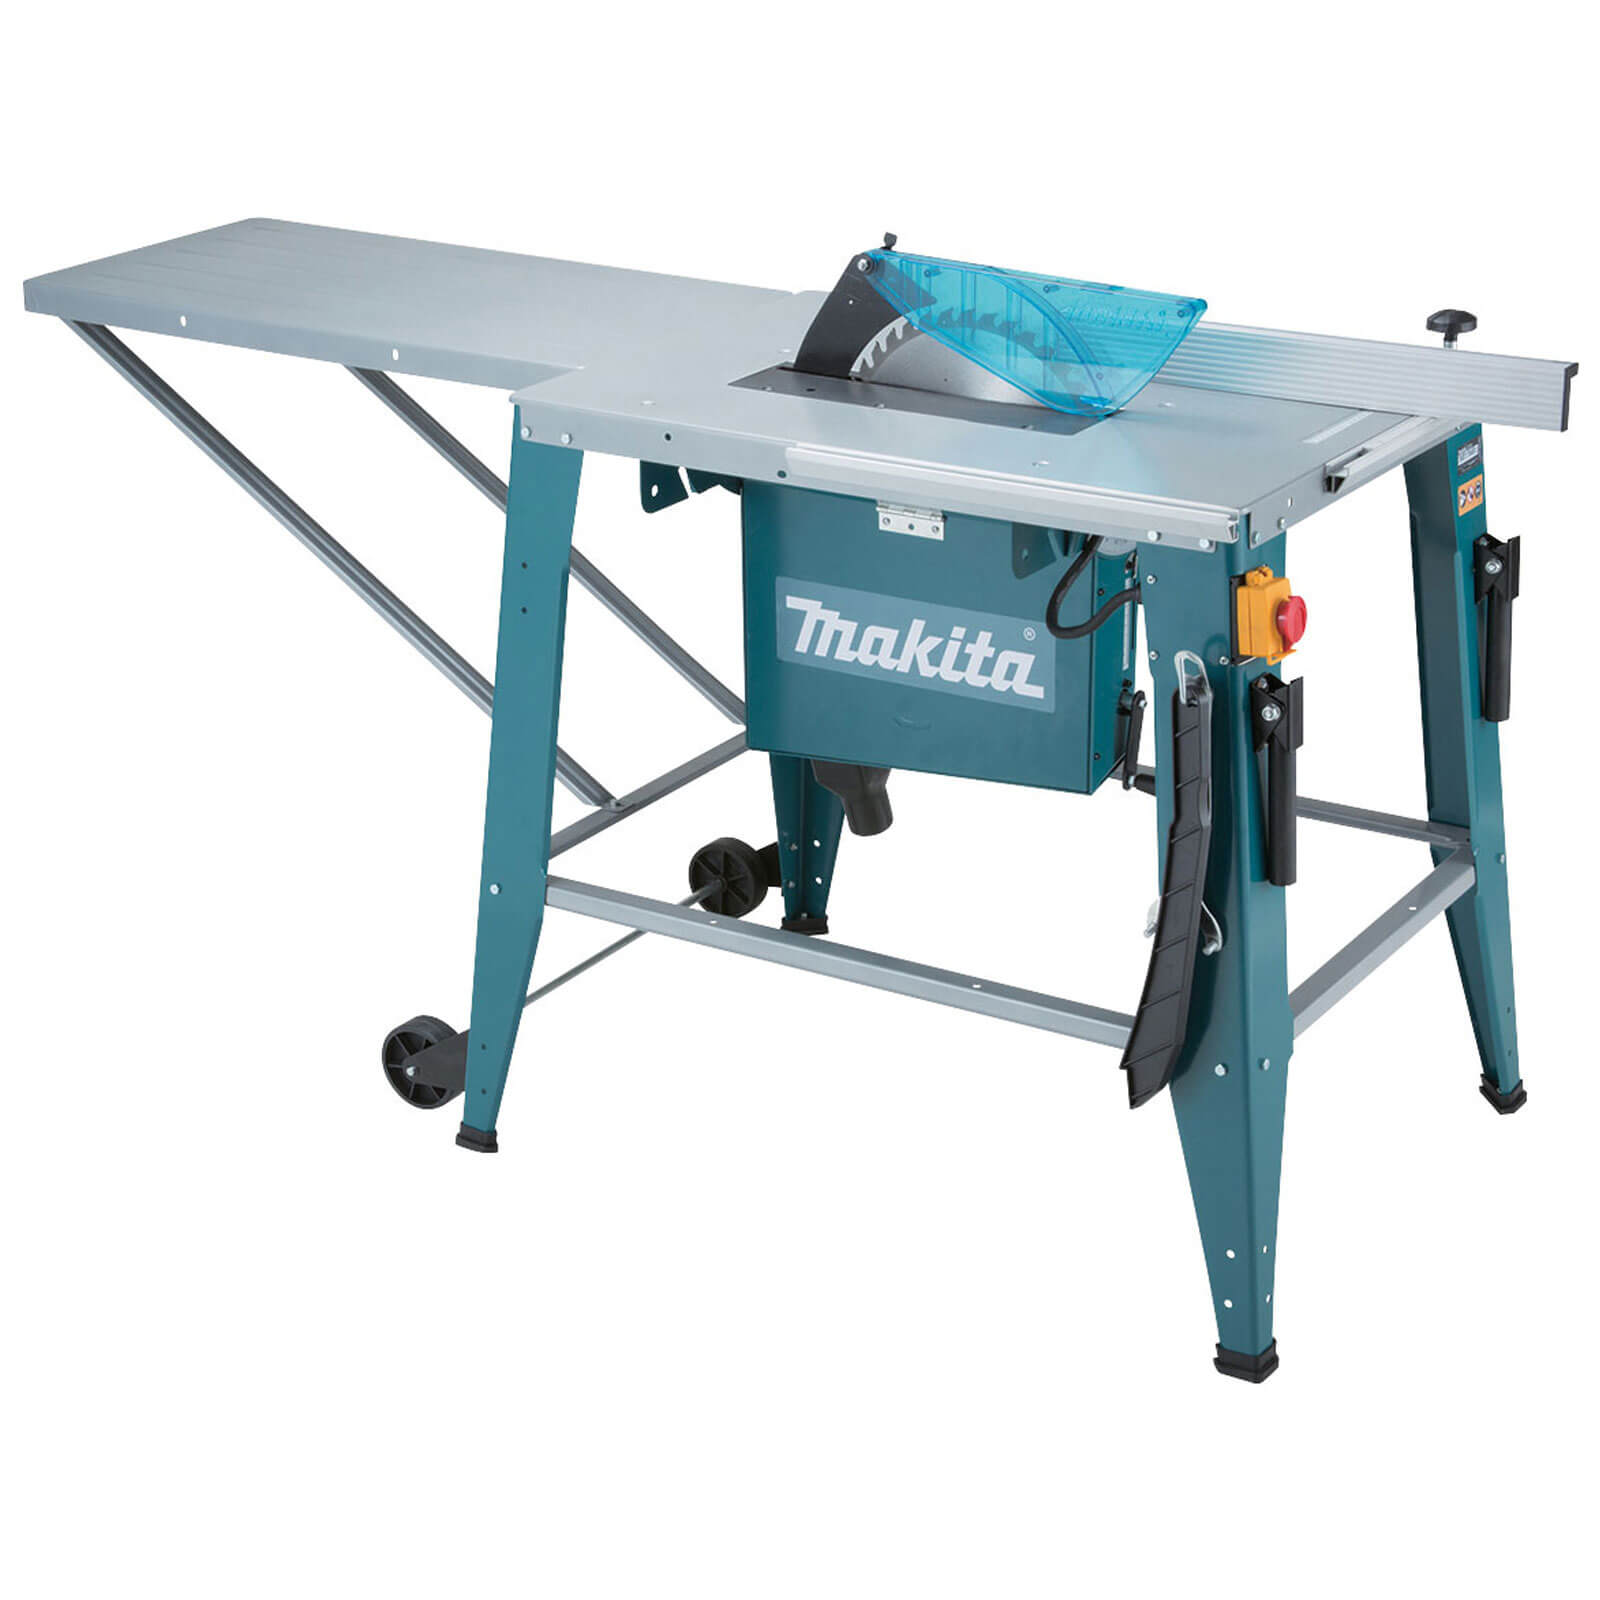 Makita 2712 Table Site Saw 315mm 240v Option: 240V